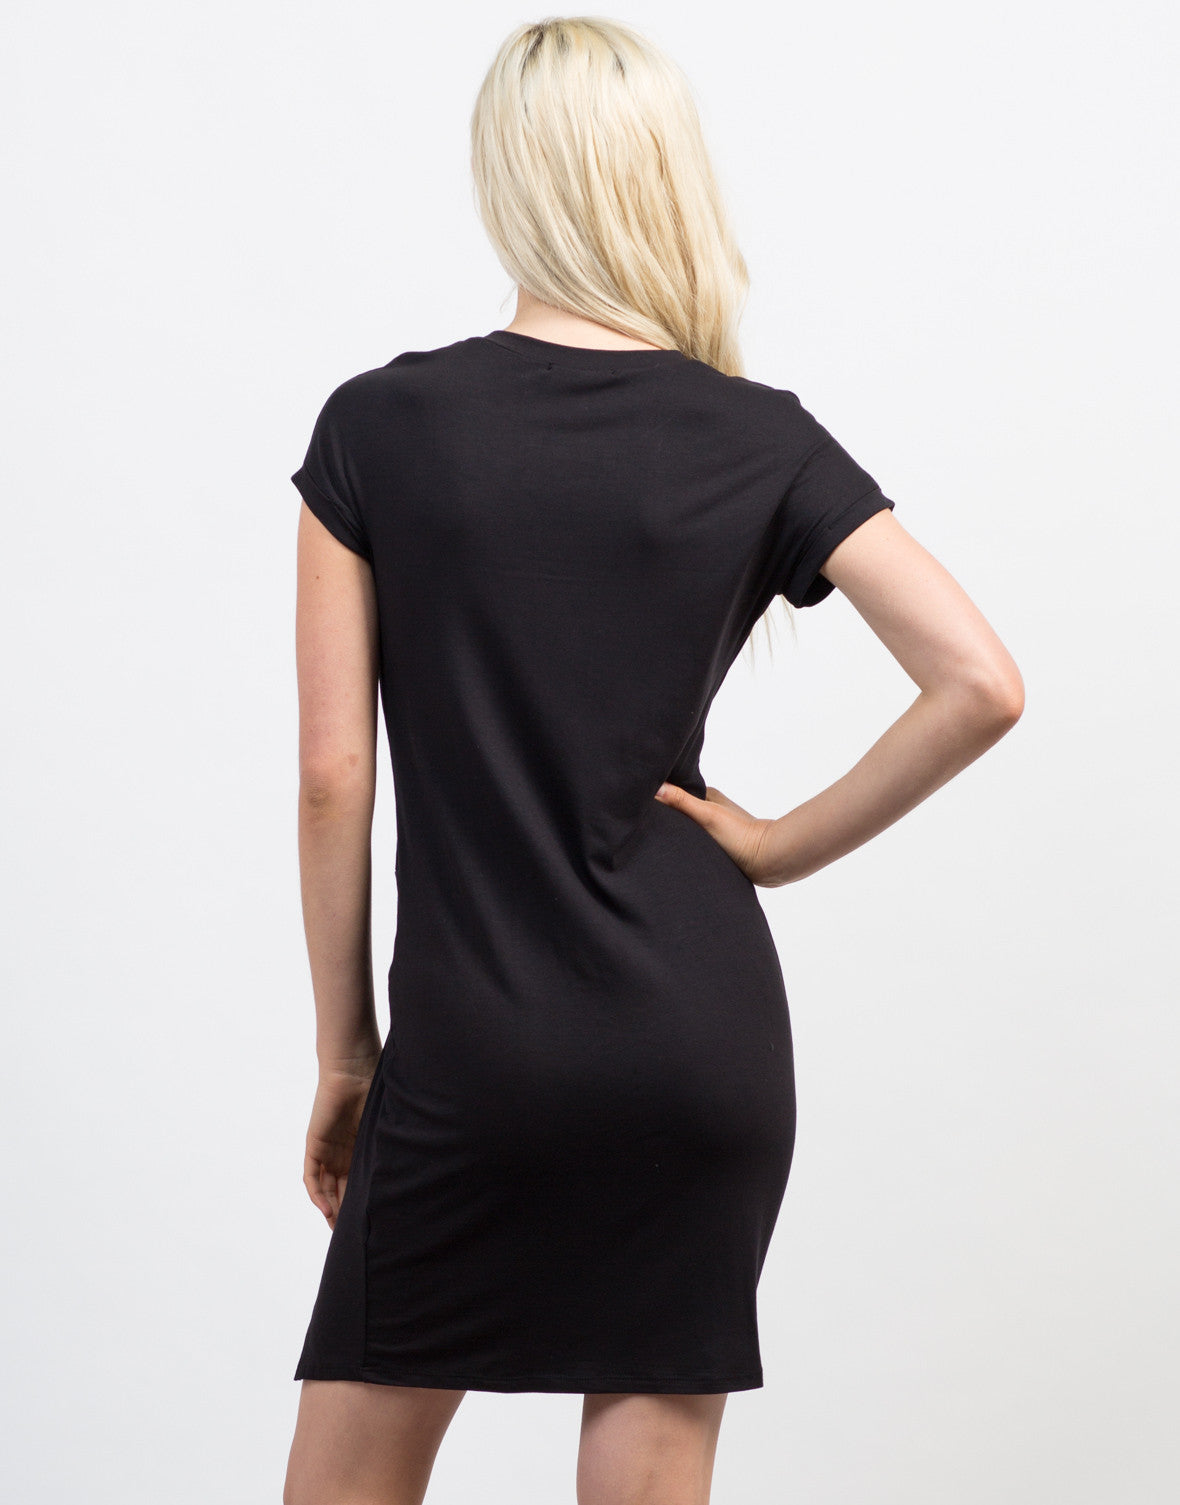 Back View of Knotted Tee Dress